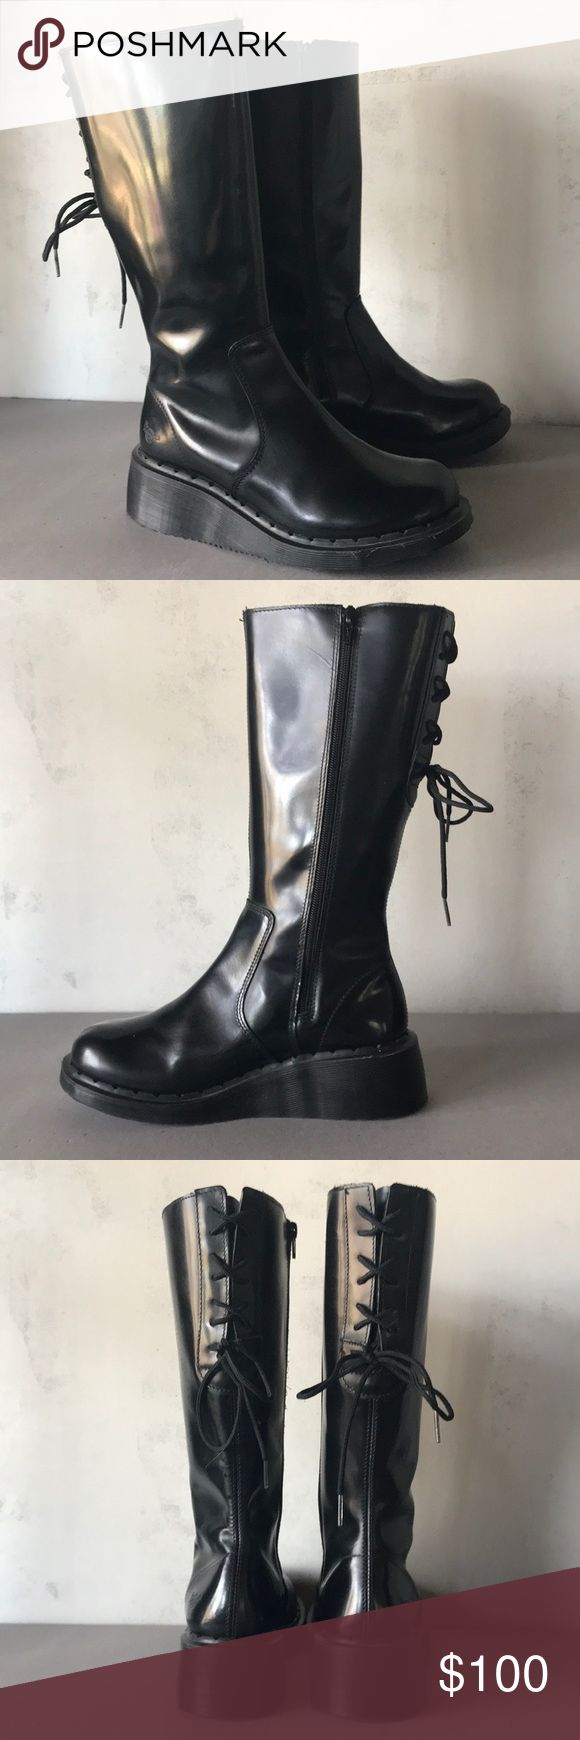 Dr Martens Mid Calf Boots Rare Dr Martens mid calf wedged boots. Side zipper. Laced back for that just right fit. Air cushioned sole. Beautiful condition. UK 6/US 8. Made in 🇬🇧 Dr. Martens Shoes Lace Up Boots